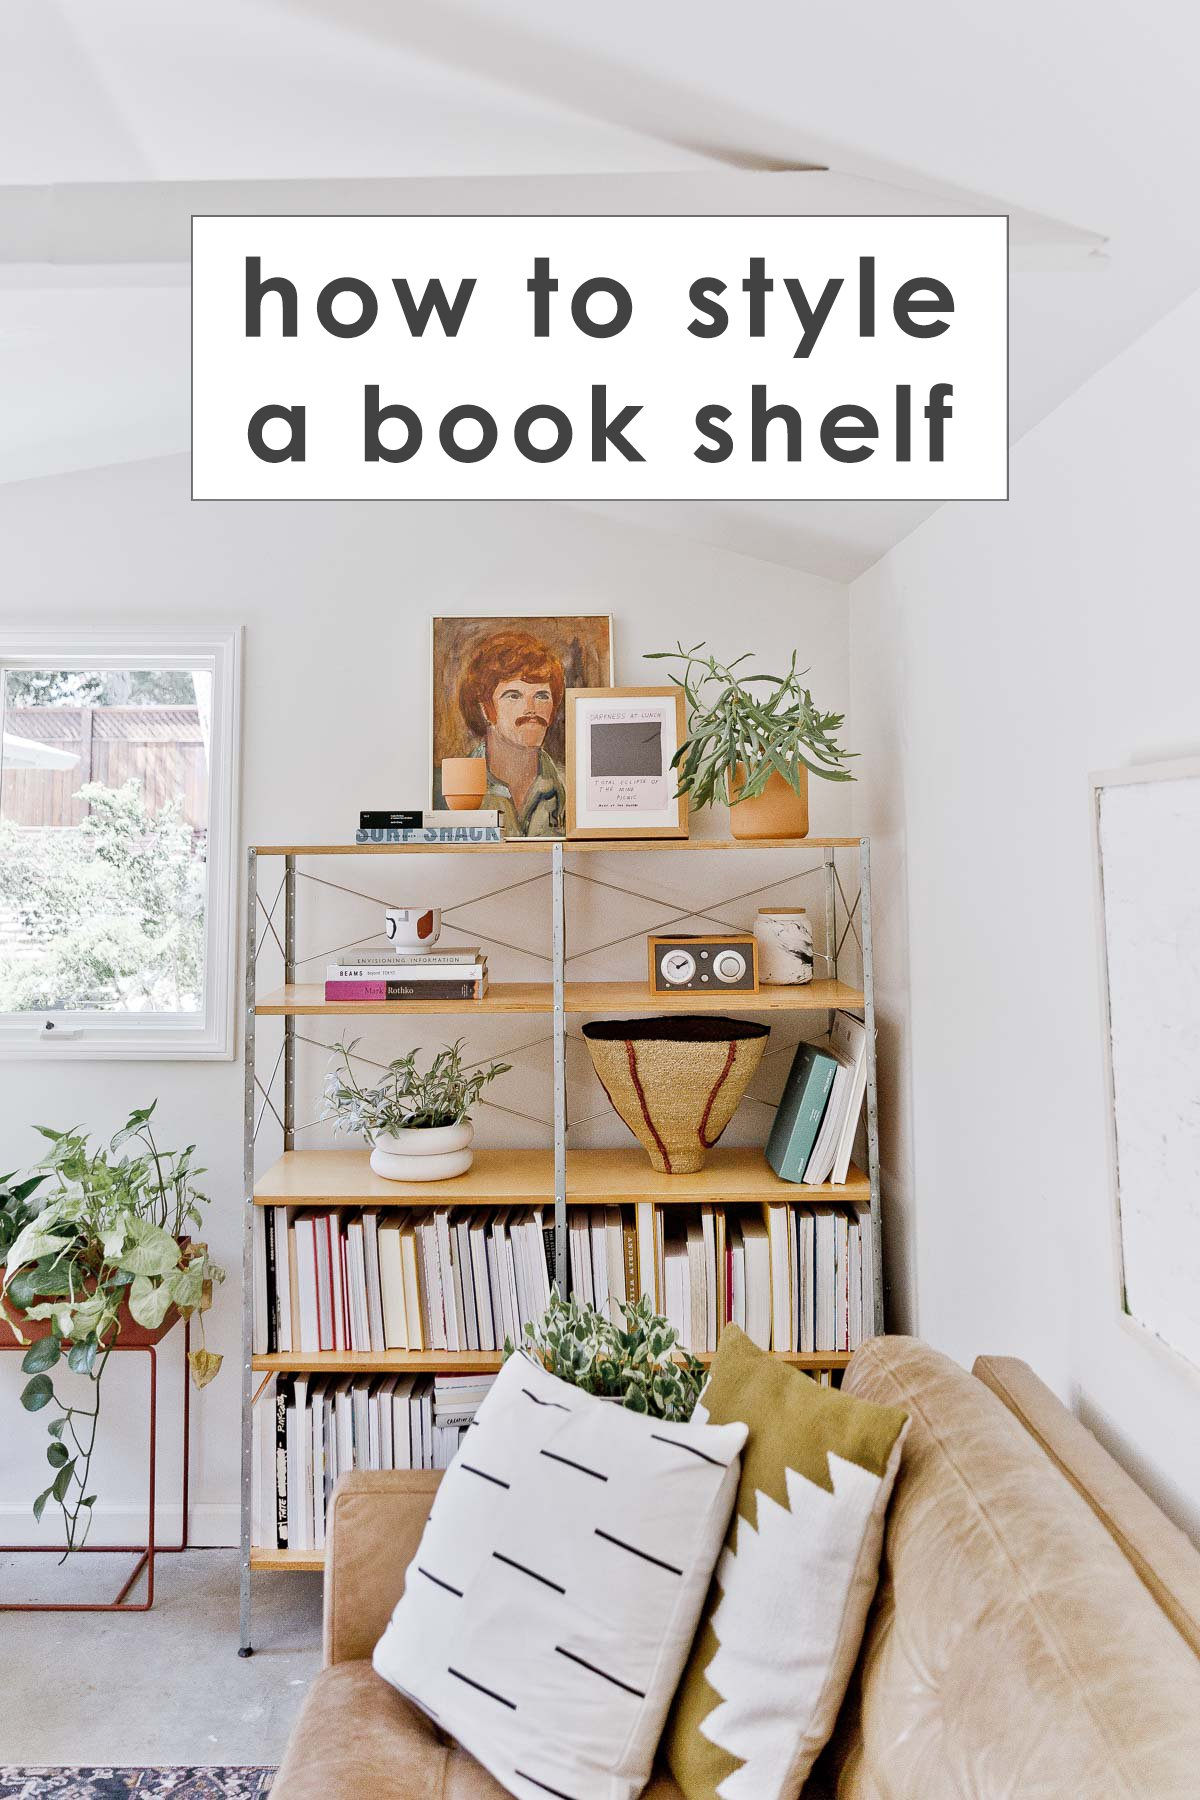 mid-century wood bookshelf in modern living room with text overlay